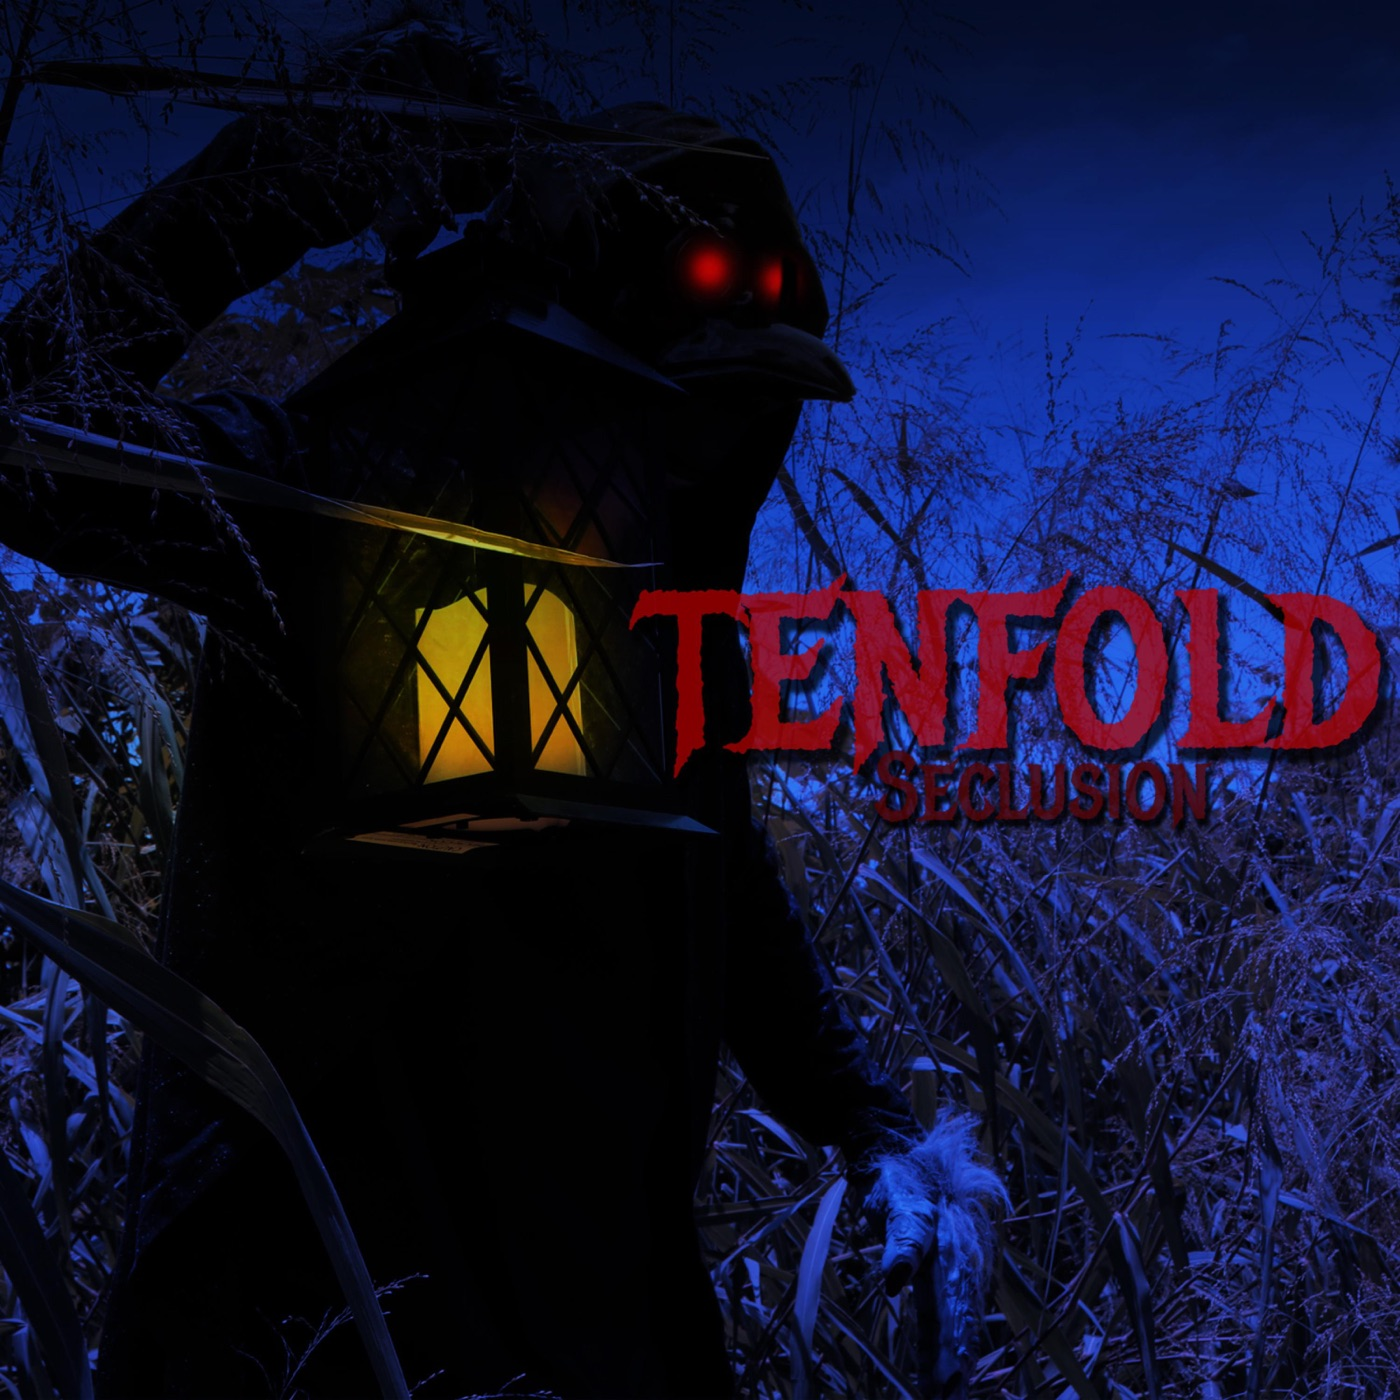 Tenfold - Seclusion (2018)